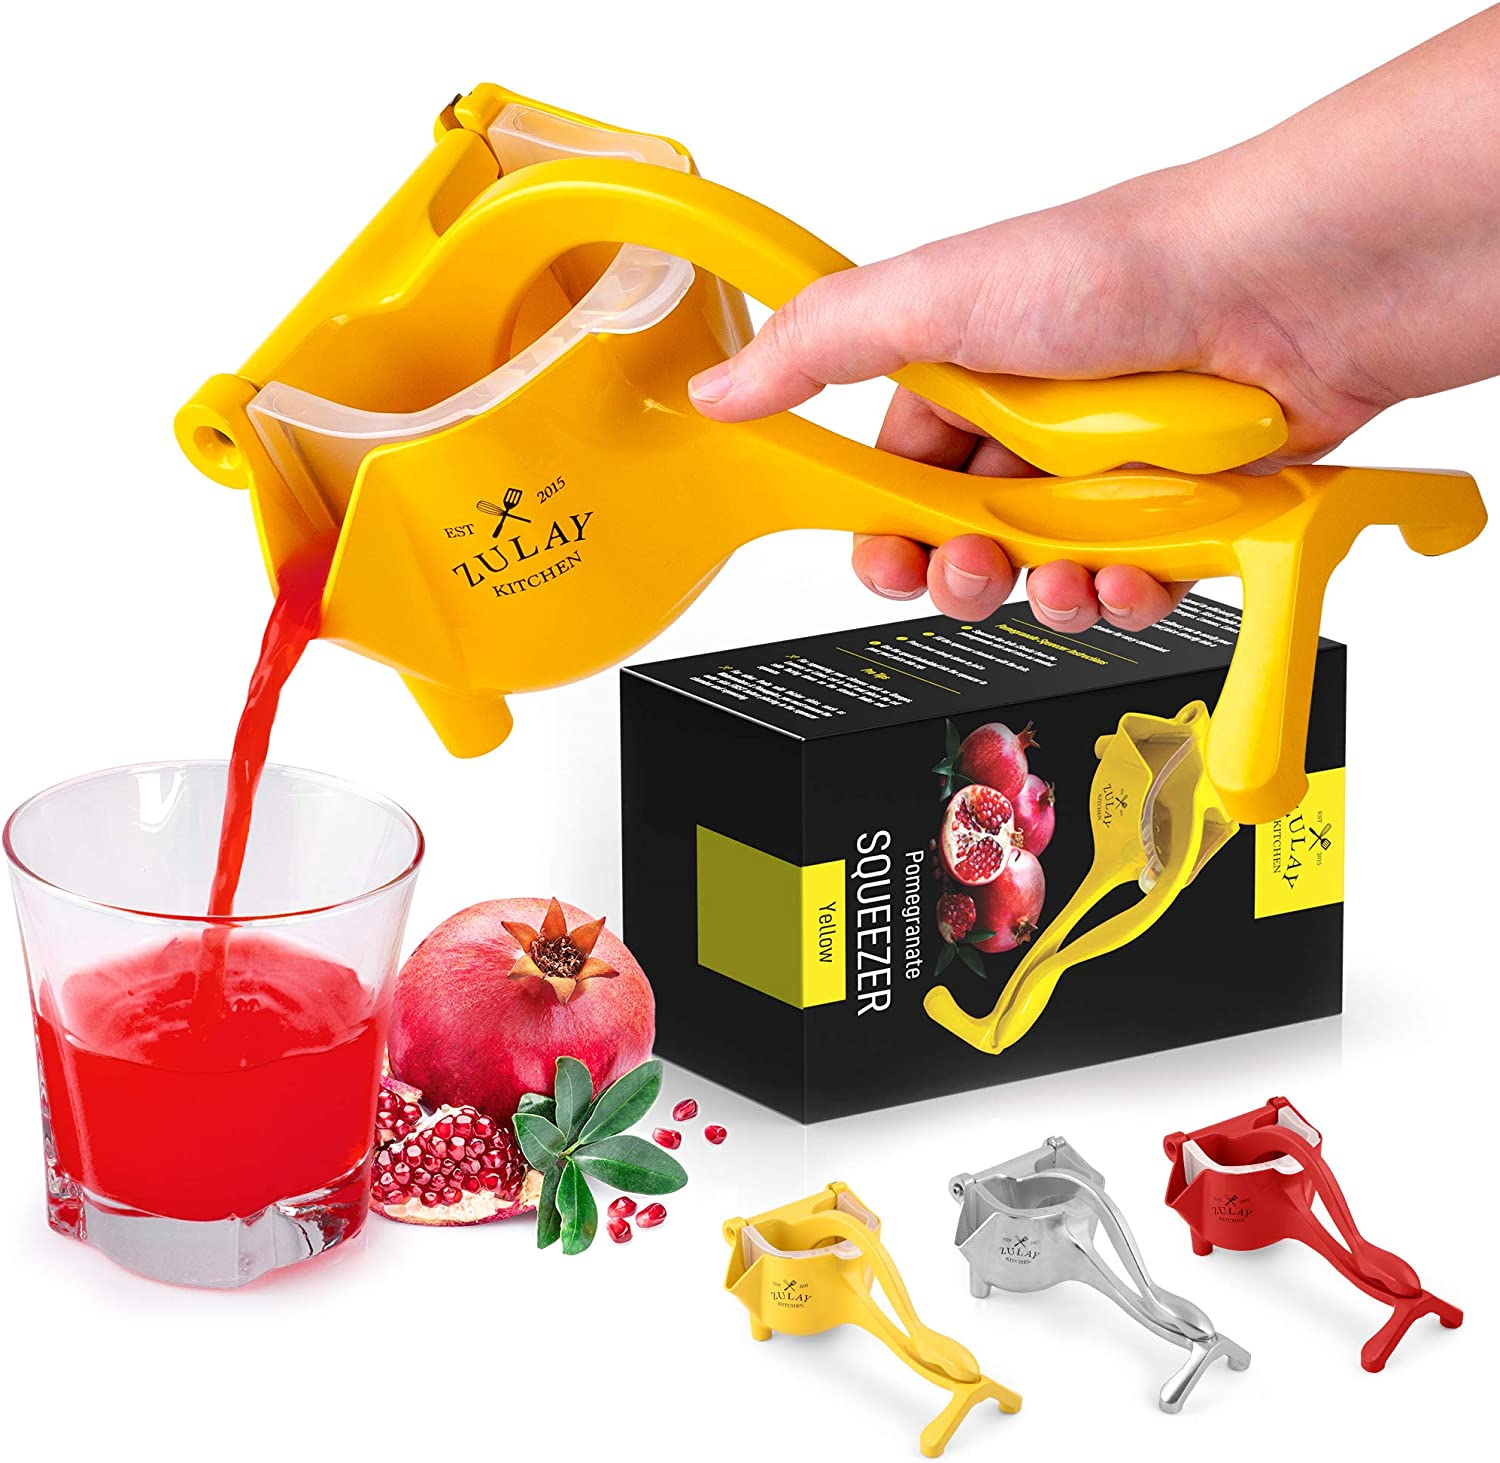 Zulay Fruit Manual Juicer- Heavy Duty Juice Press Squeezer with Detachable Lever & Removable Strainer - Fruit Press & Hand Juicer For Pomegranates, Lemons, Oranges, and More (Yellow)